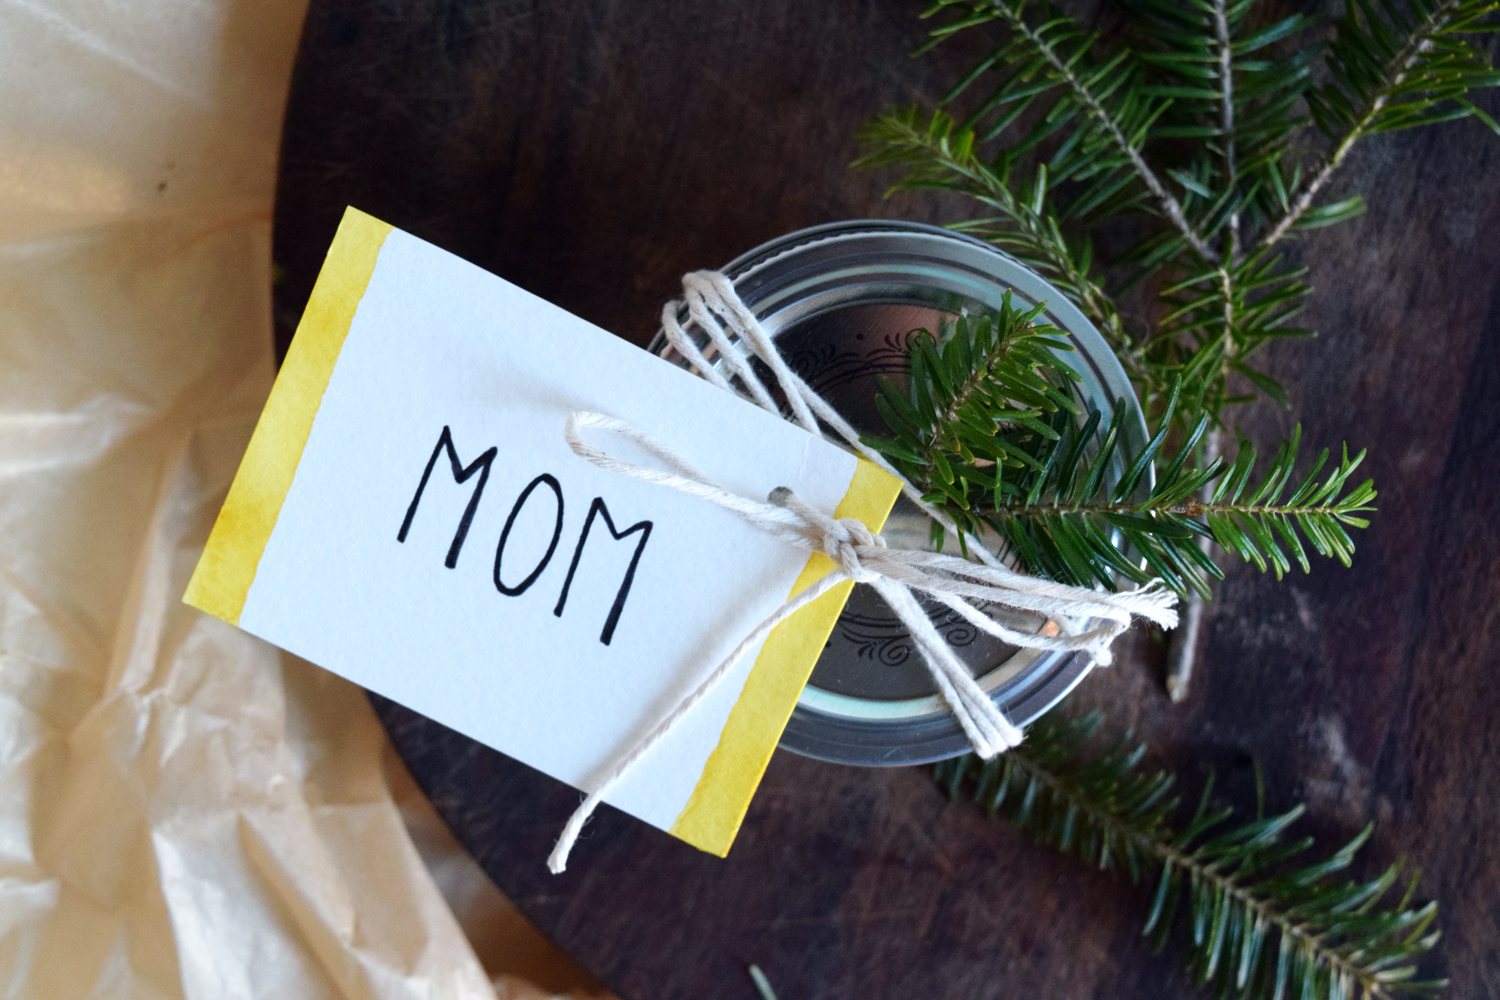 anti-consumerist gift guide mason jar diy holiday budget